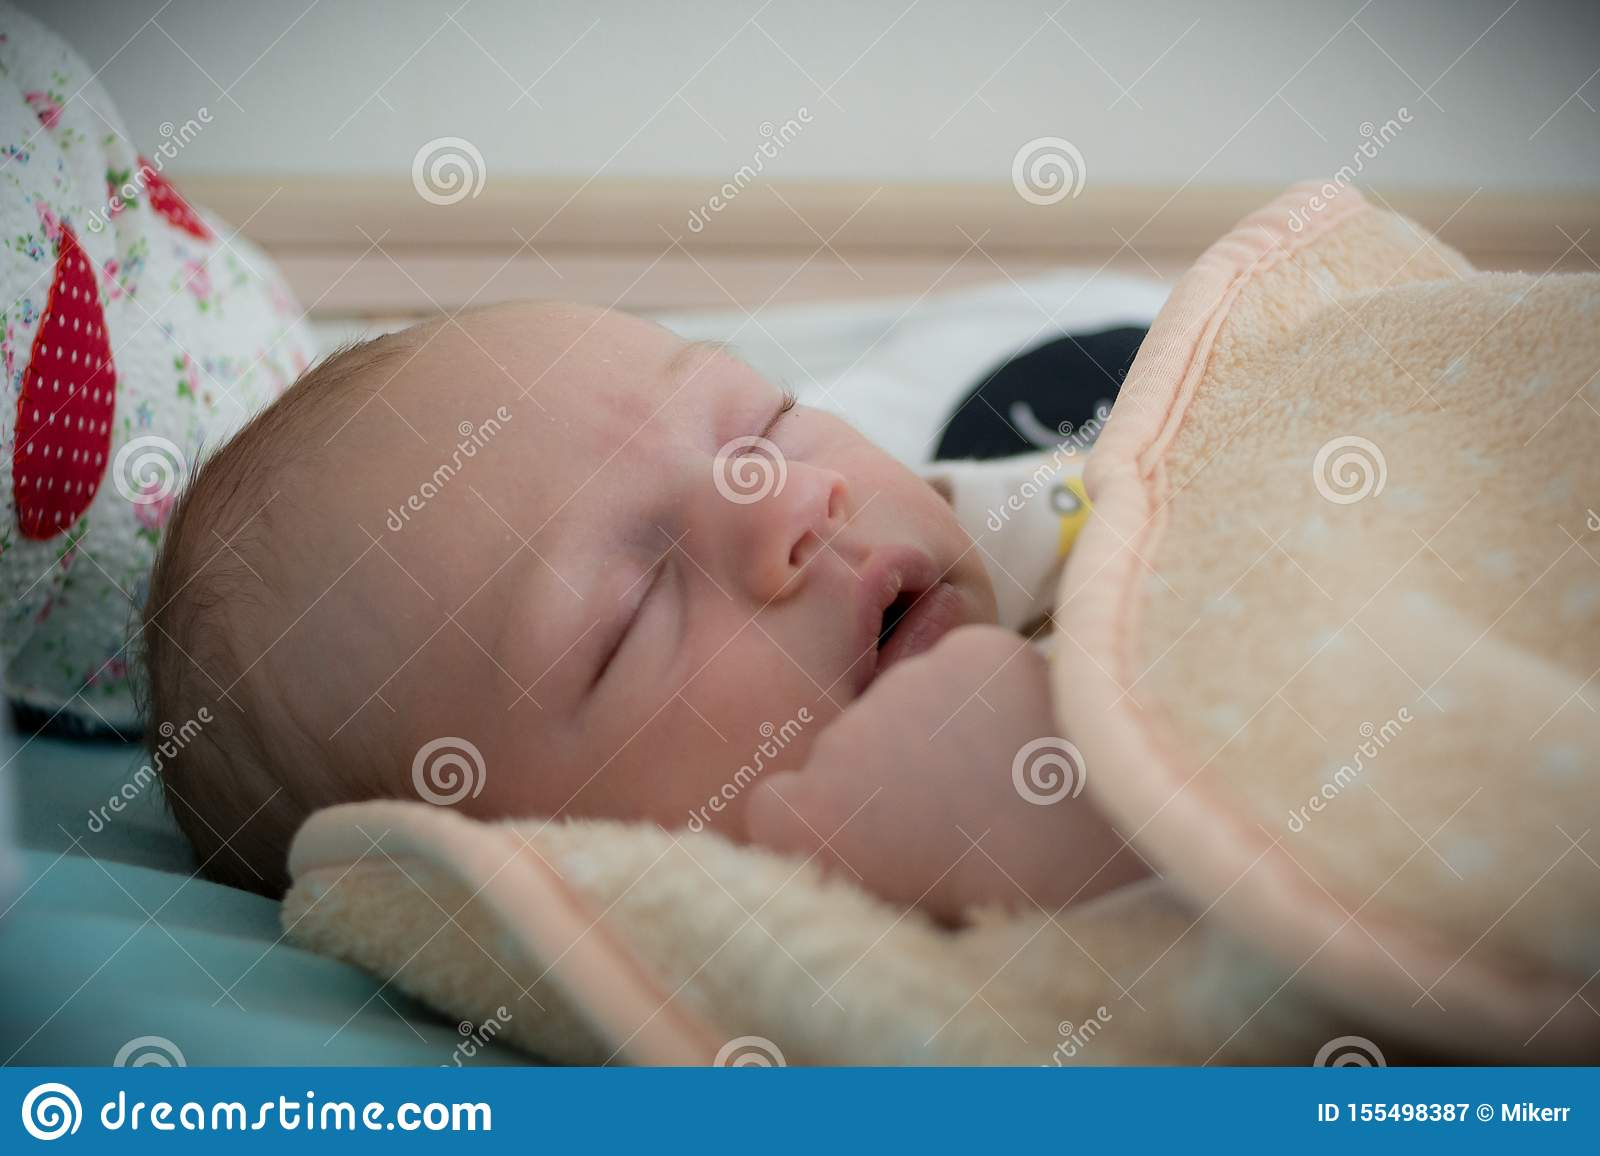 Newborn Baby Stock Images - Download 210,286 Royalty Free Photos